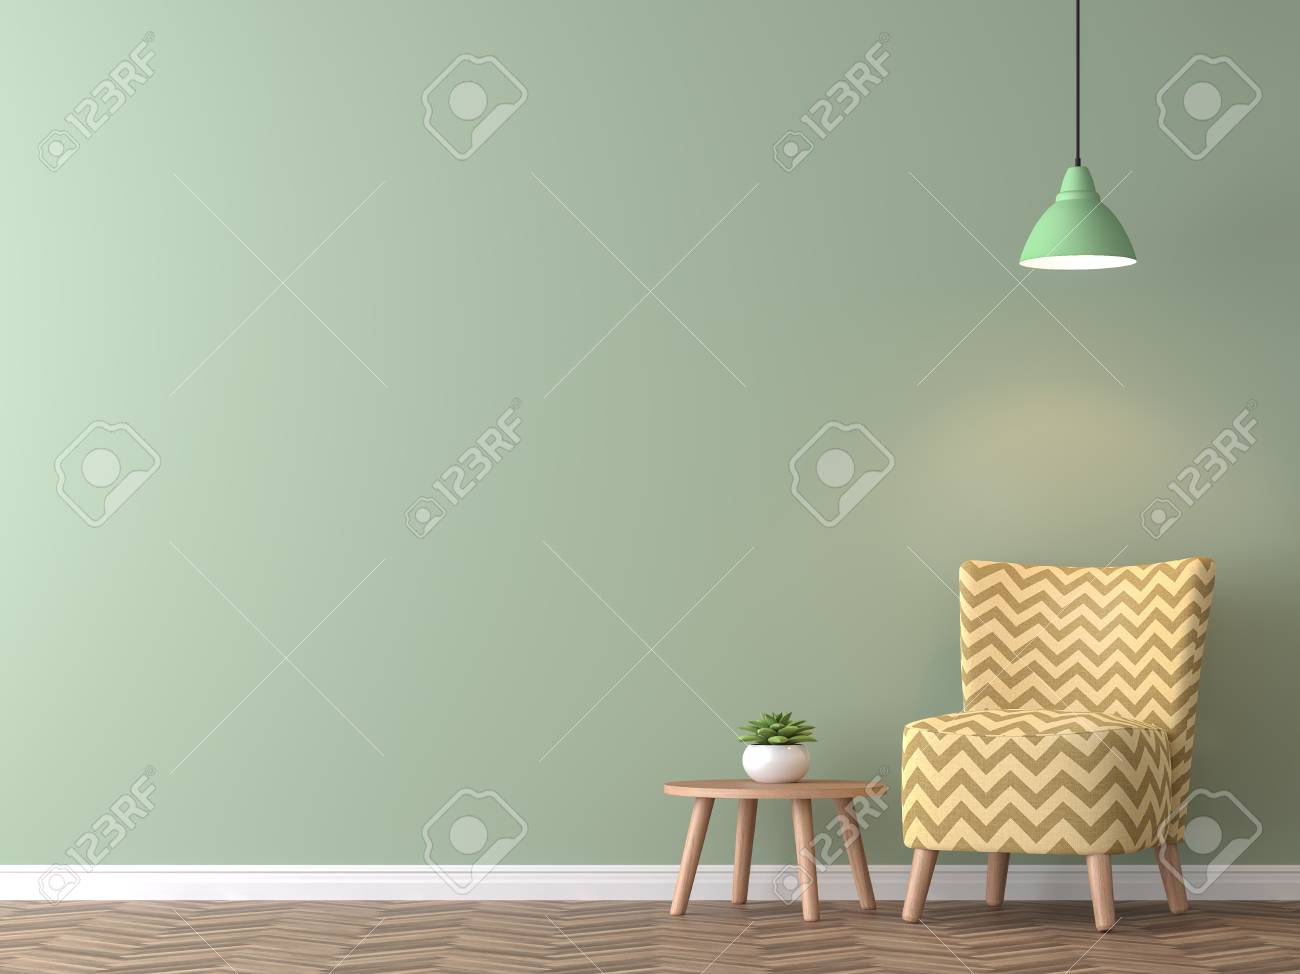 Modern vintage living room with green wall 3d rendering image.There..